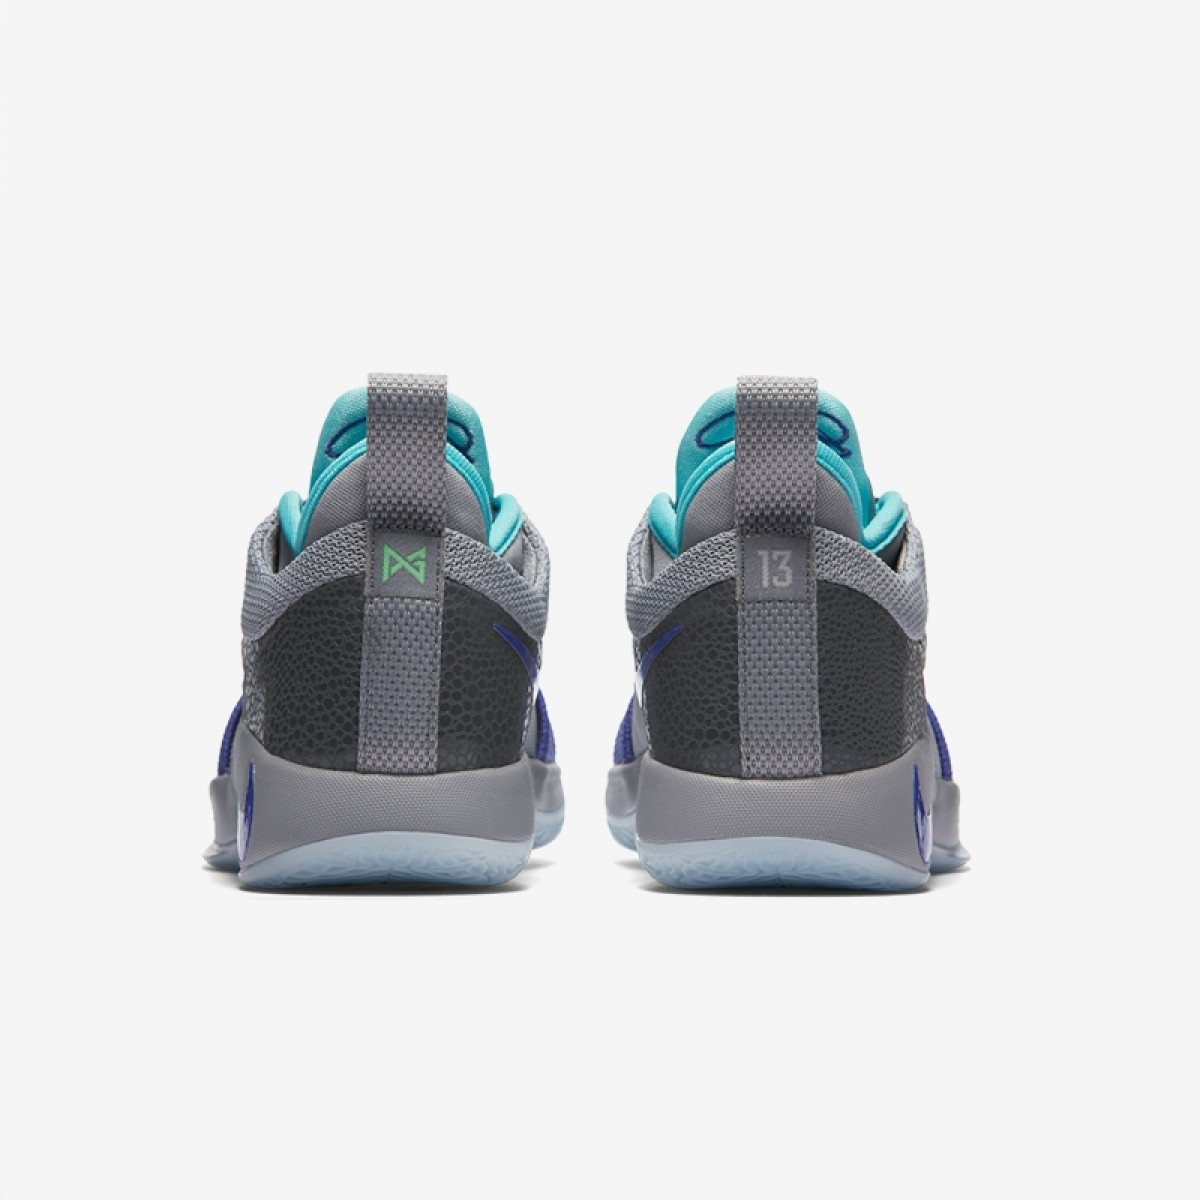 Nike PG2 GS 'To the Moon' 943820-002